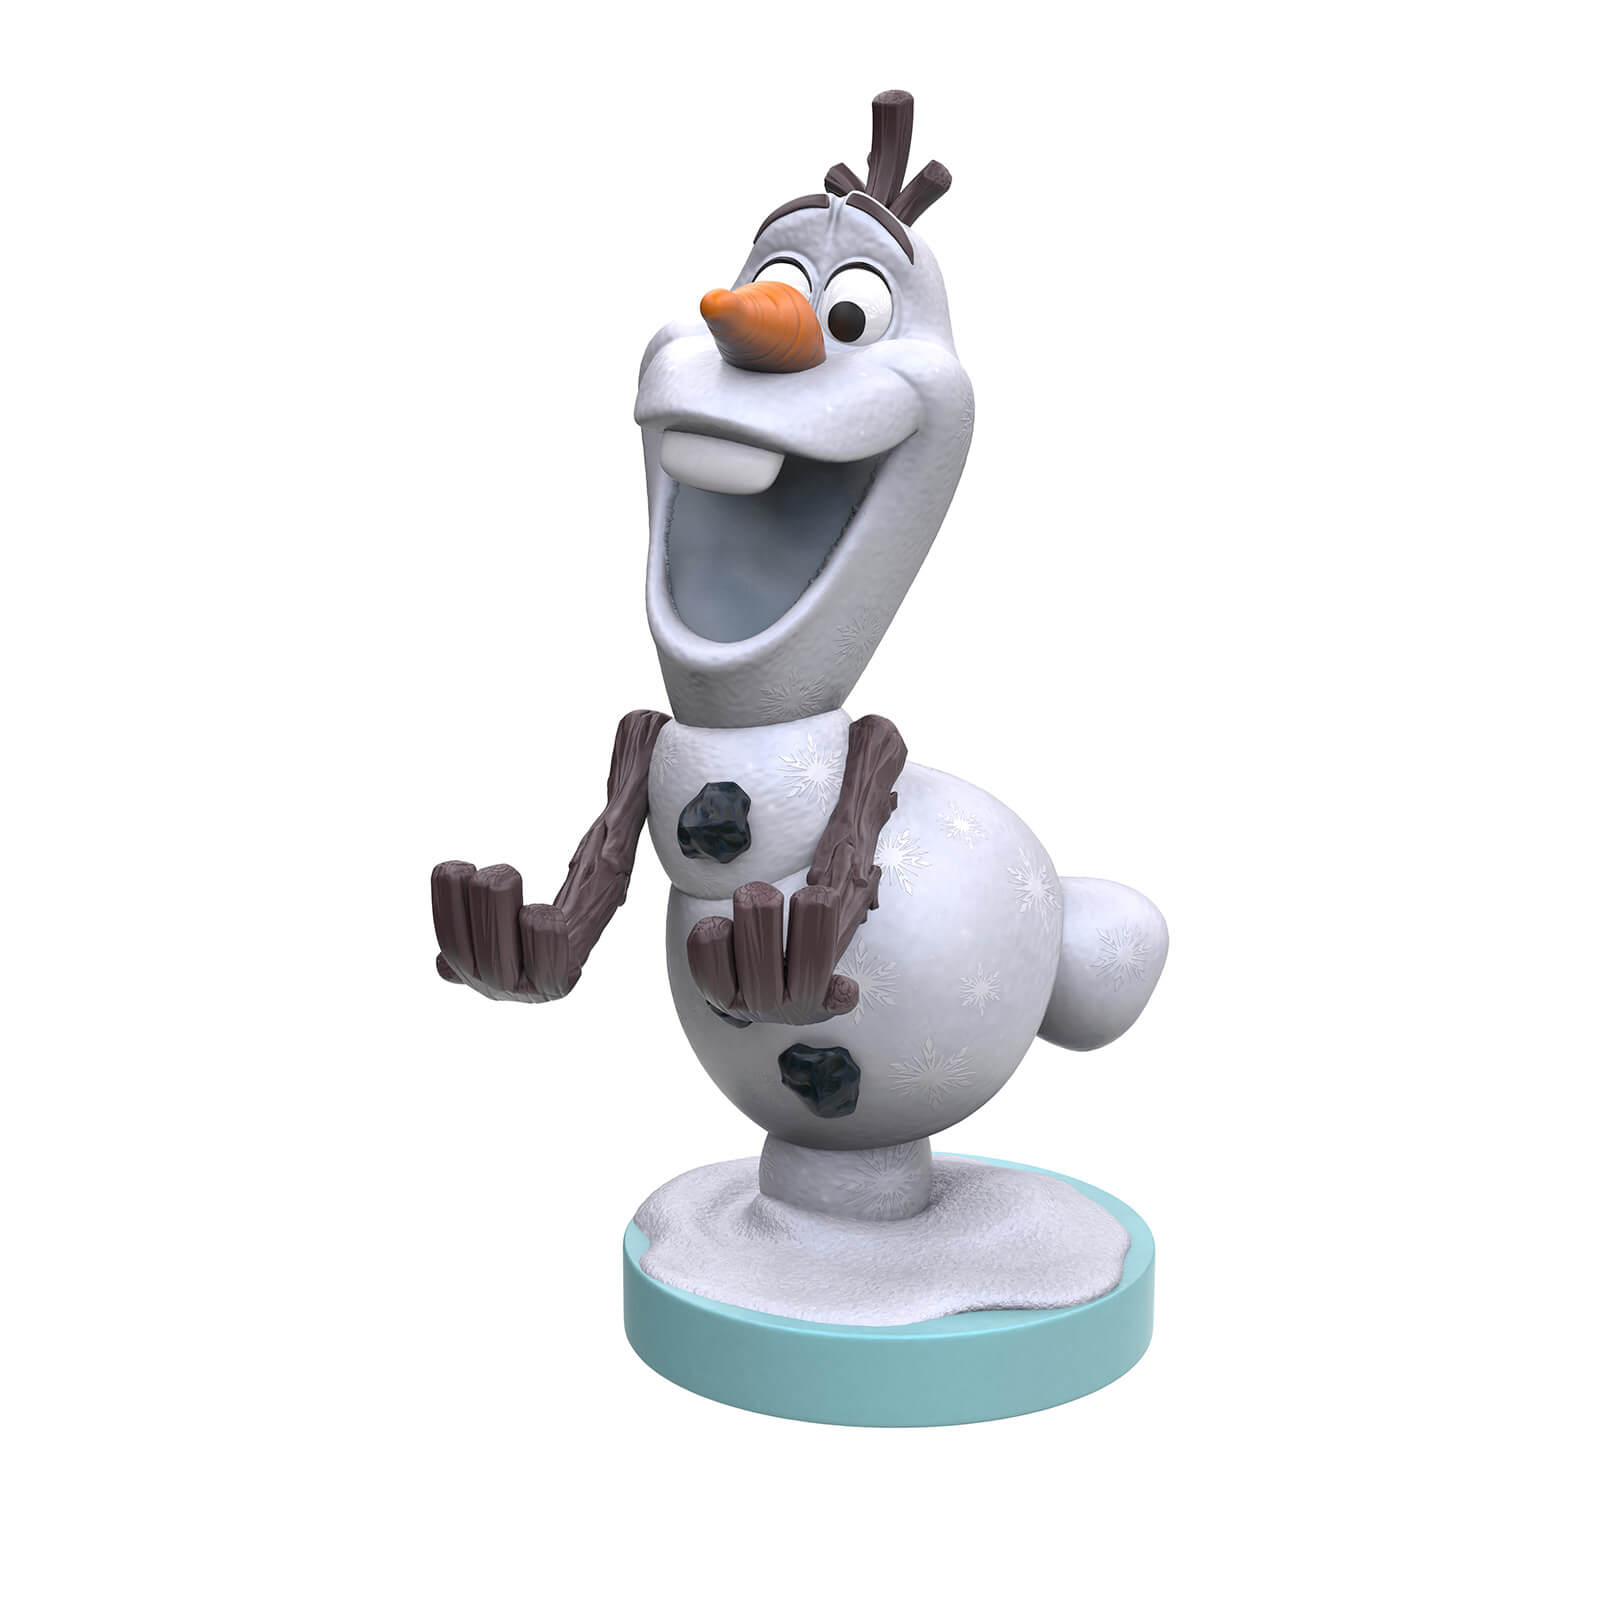 Image of Disney Collectable Frozen Olaf 8 Inch Cable Guy Controller and Smartphone Stand